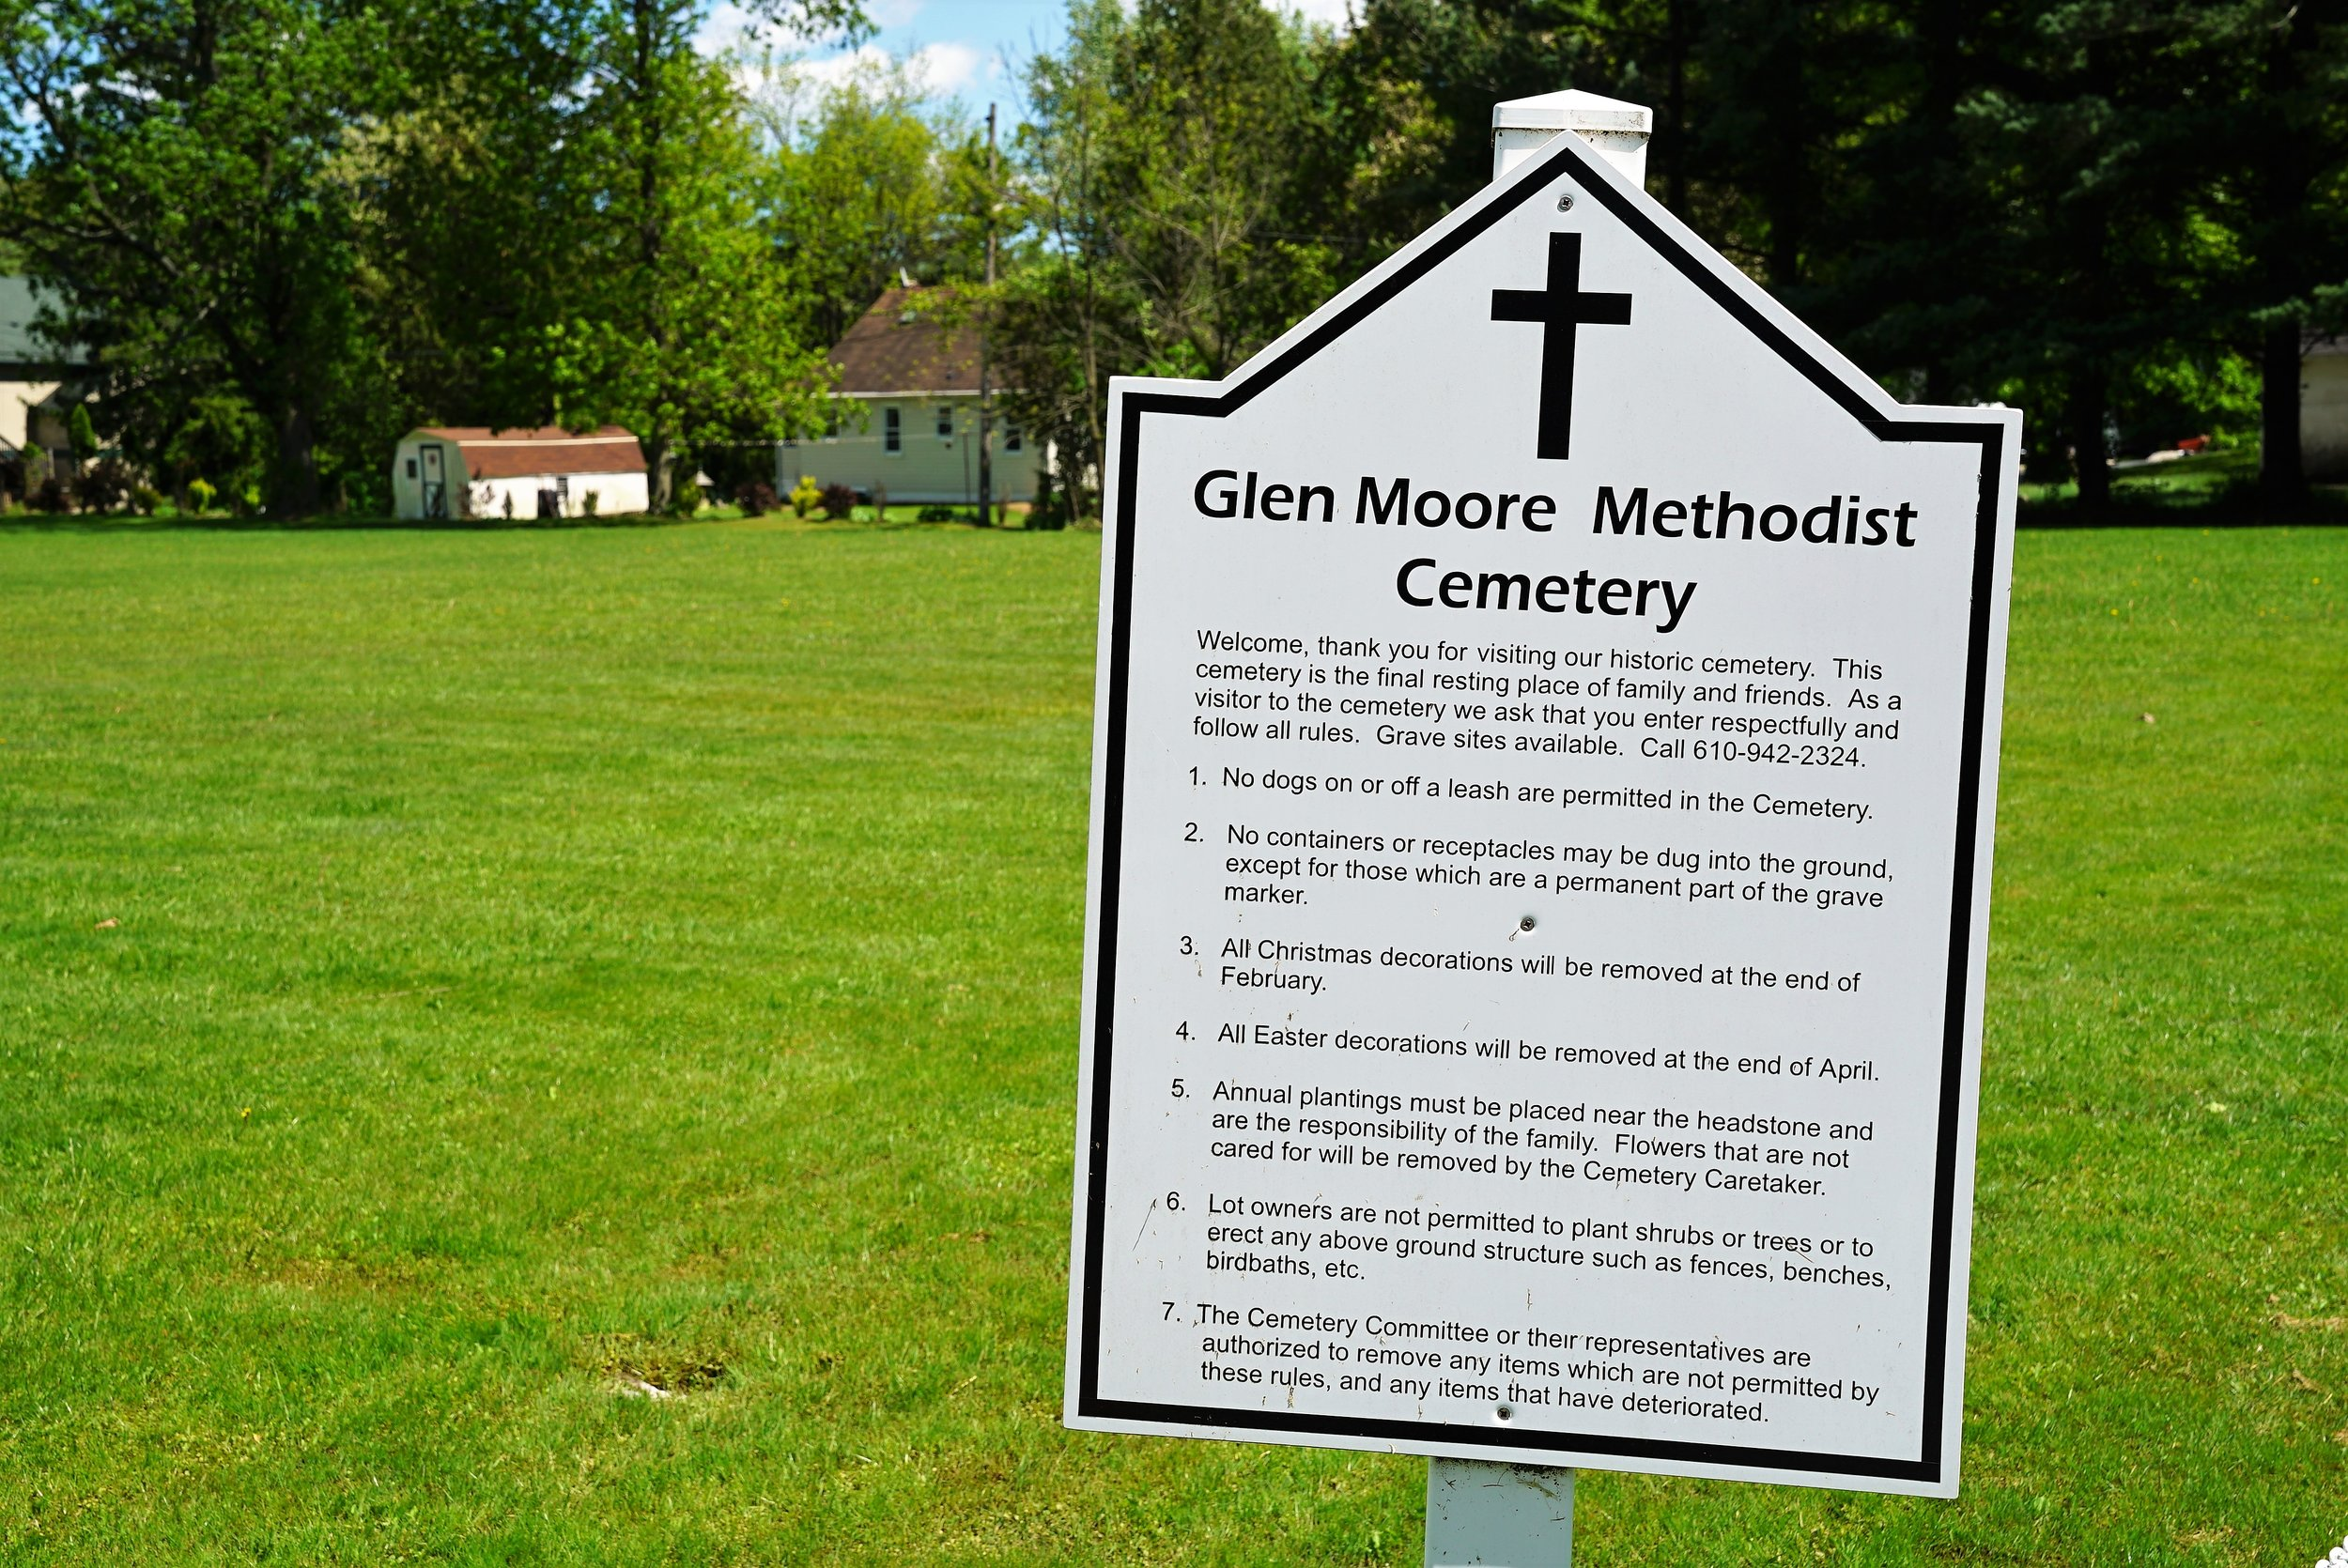 Glen Moore Methodist Church Cemetery. Glen Moore, Pennsylvania.